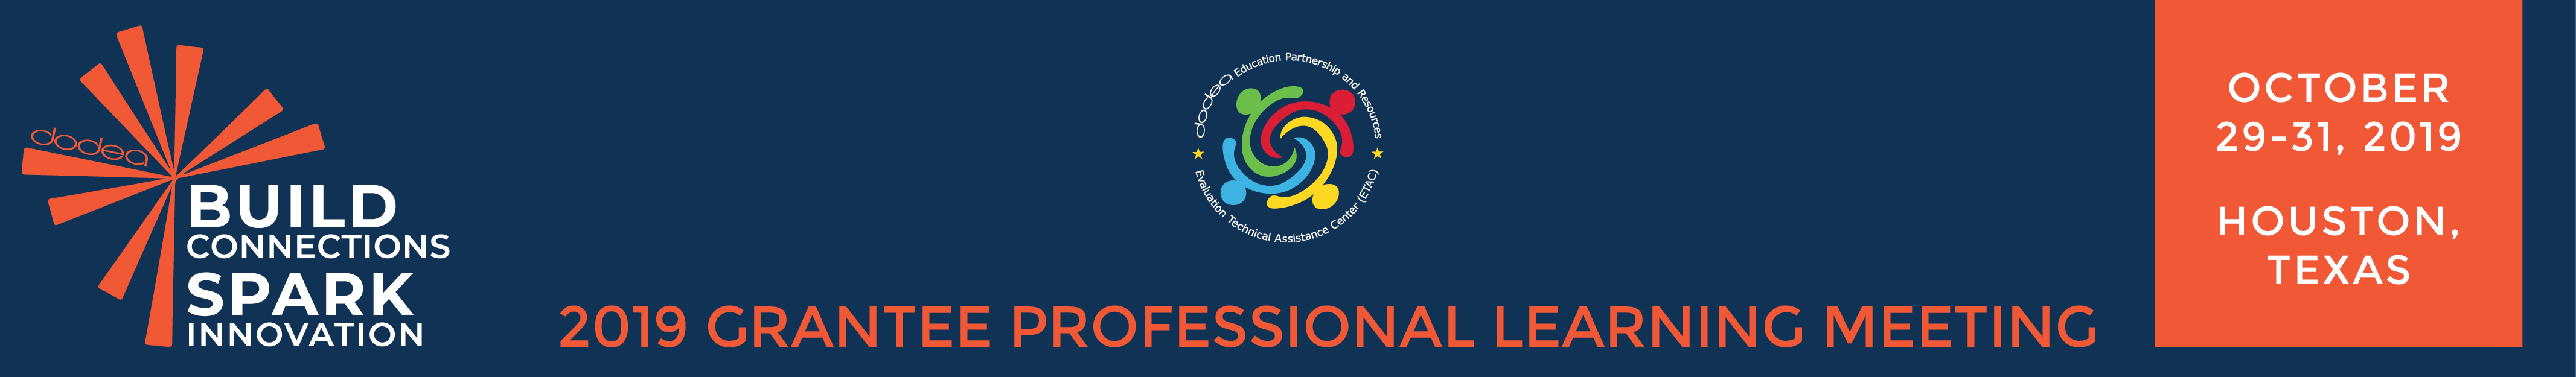 2019 Grantee Professional Learning Meeting